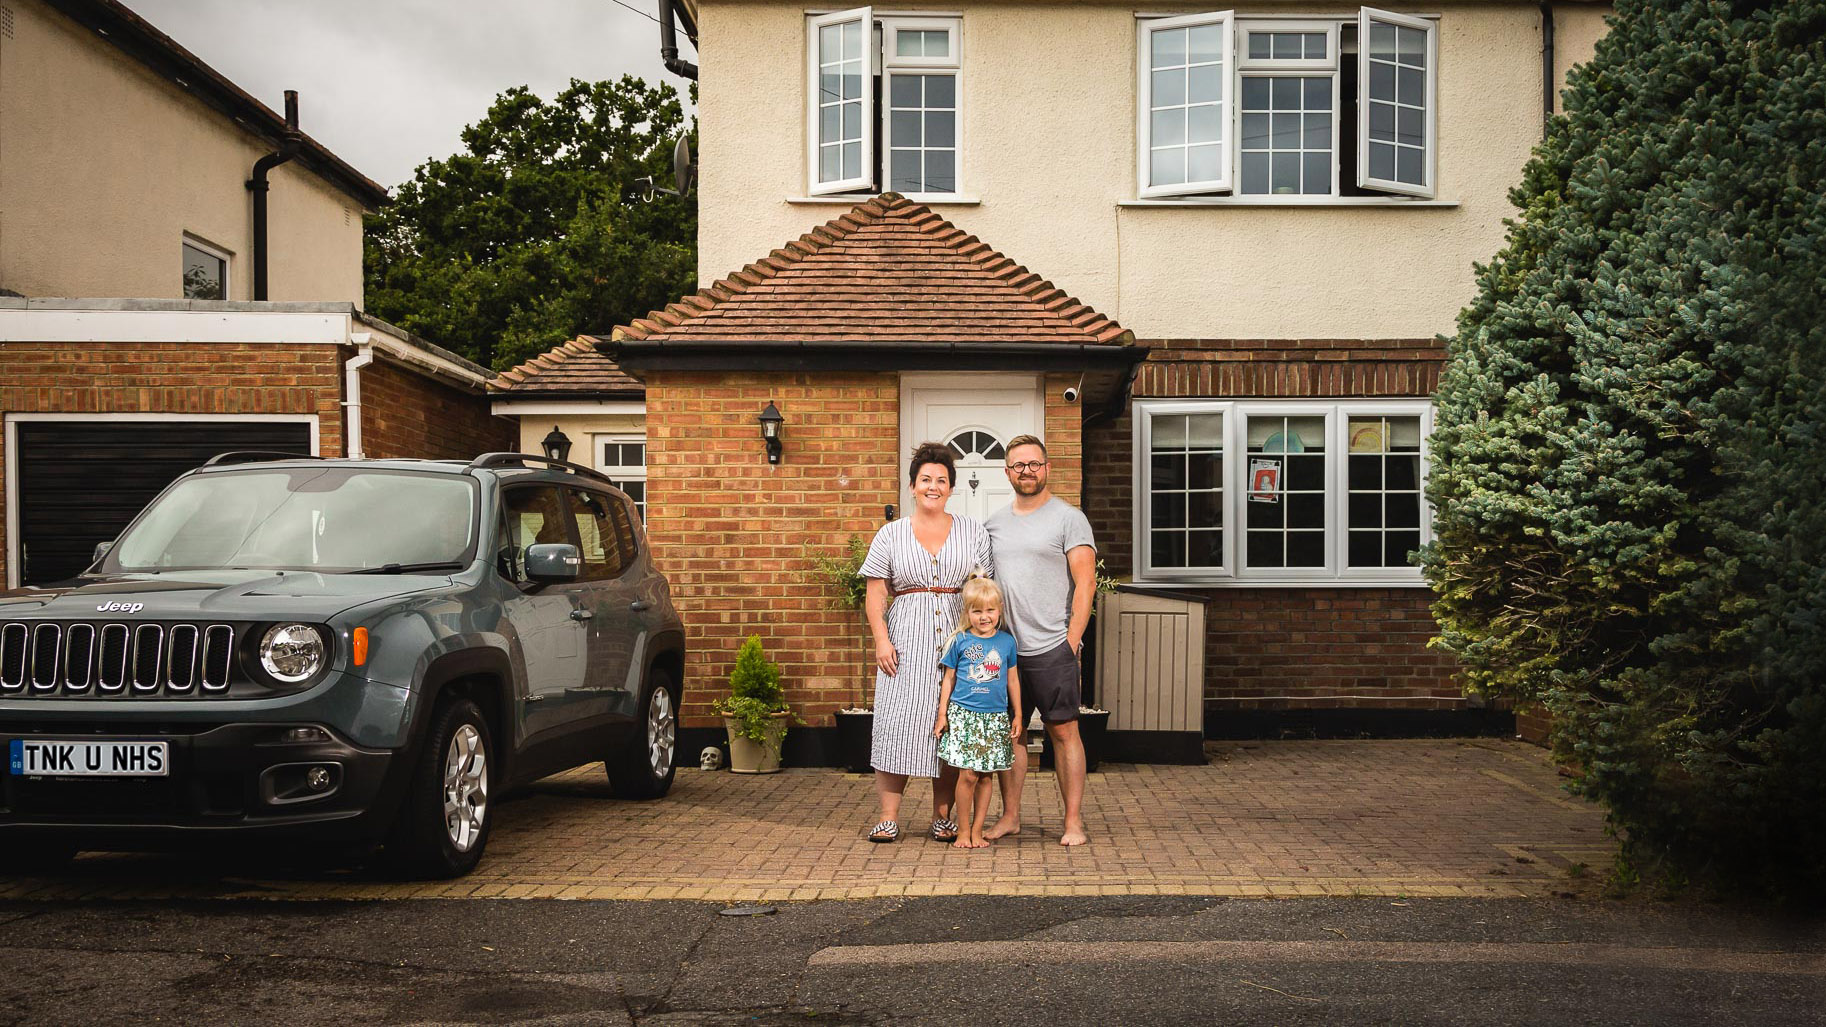 Ashtead Doorstep Portraits 88